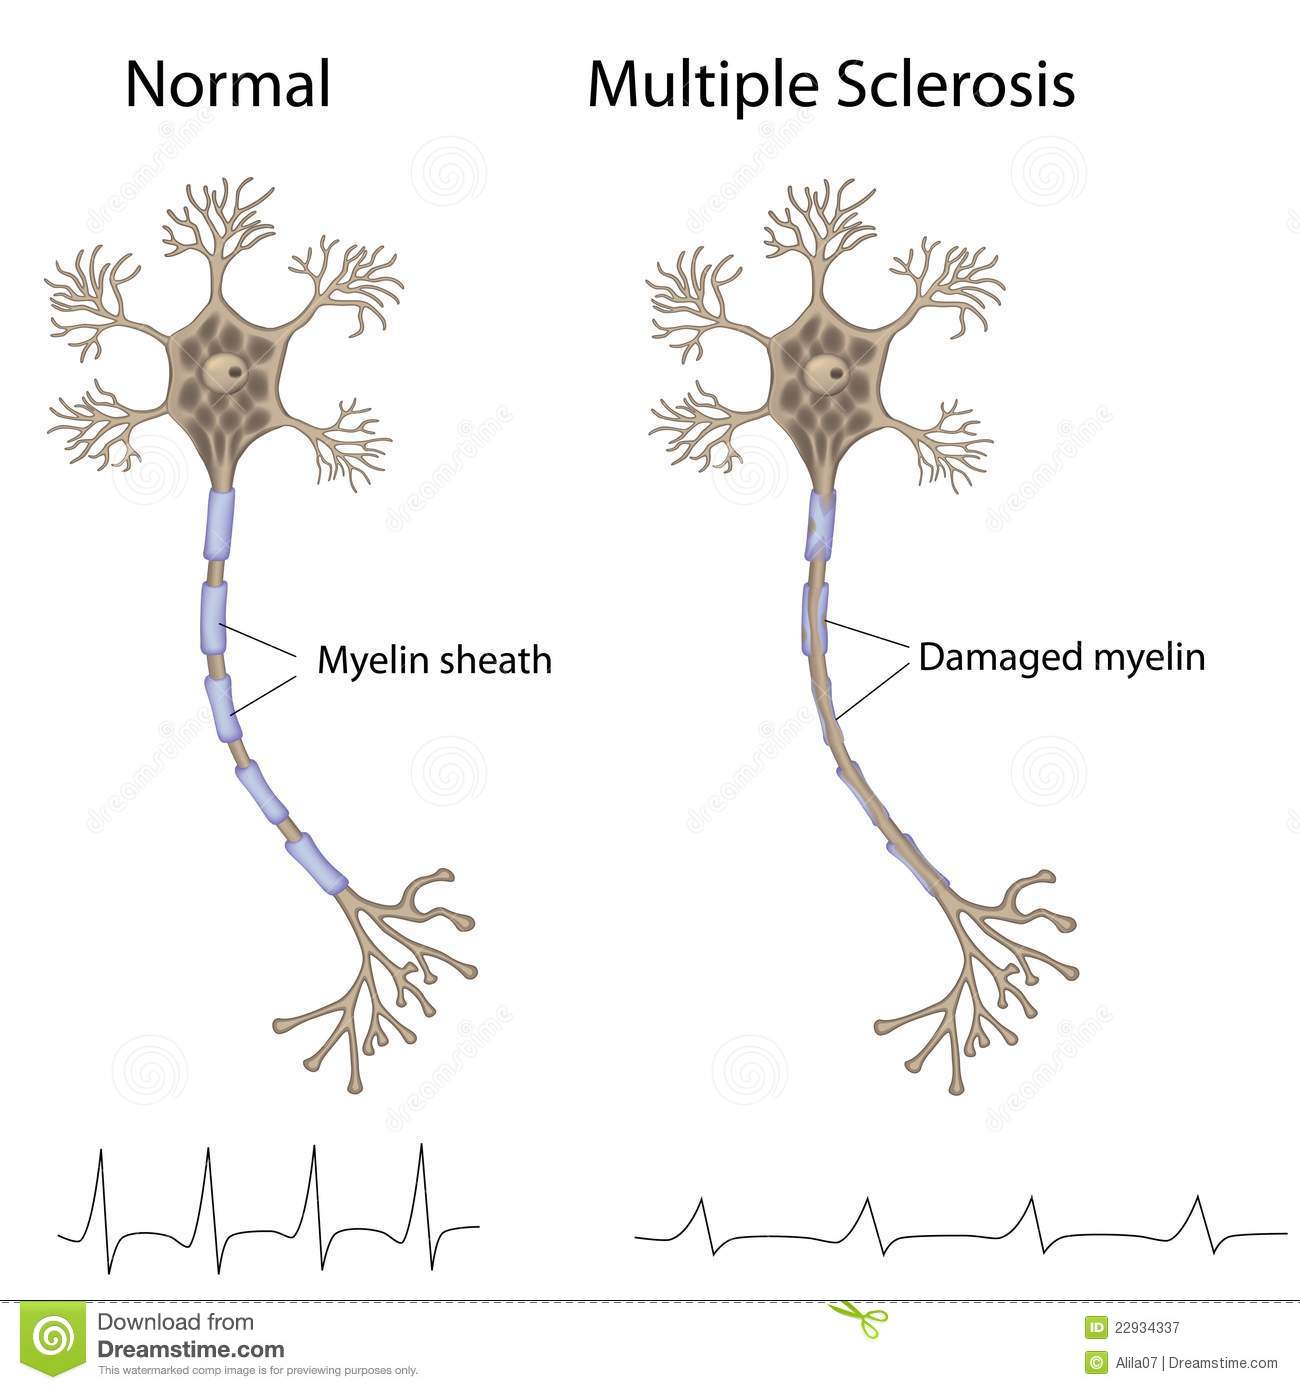 multiple sclerosis online dating Online dating can help you find relationship multiple sclerosis singles - use this dating site and become dating expert.